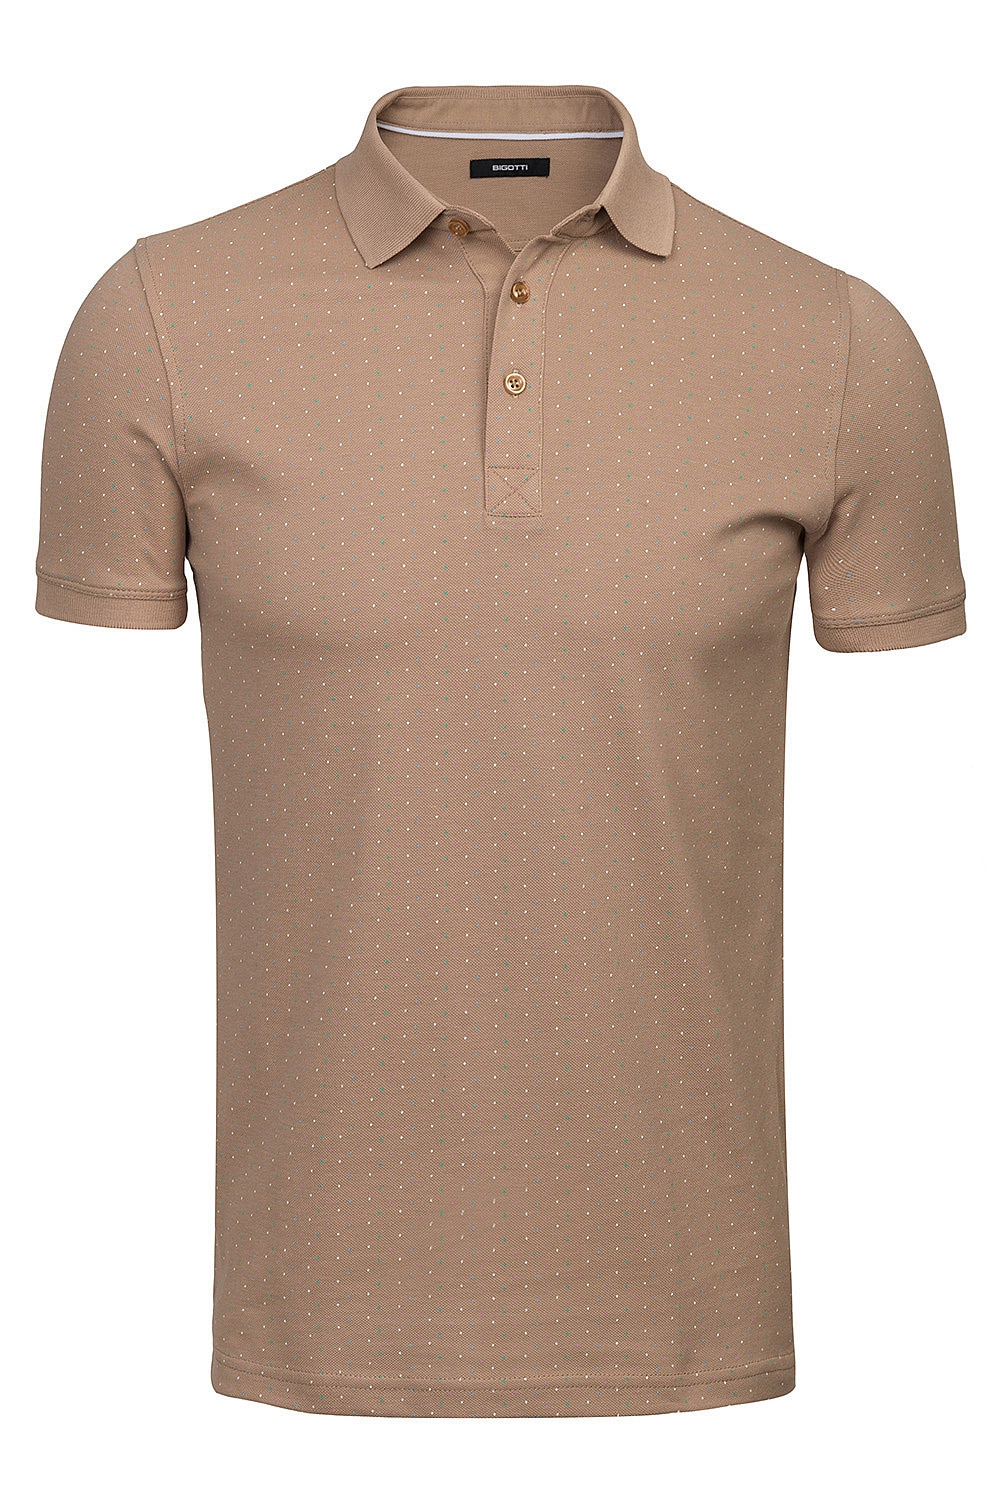 Tricou polo bej microprint 0